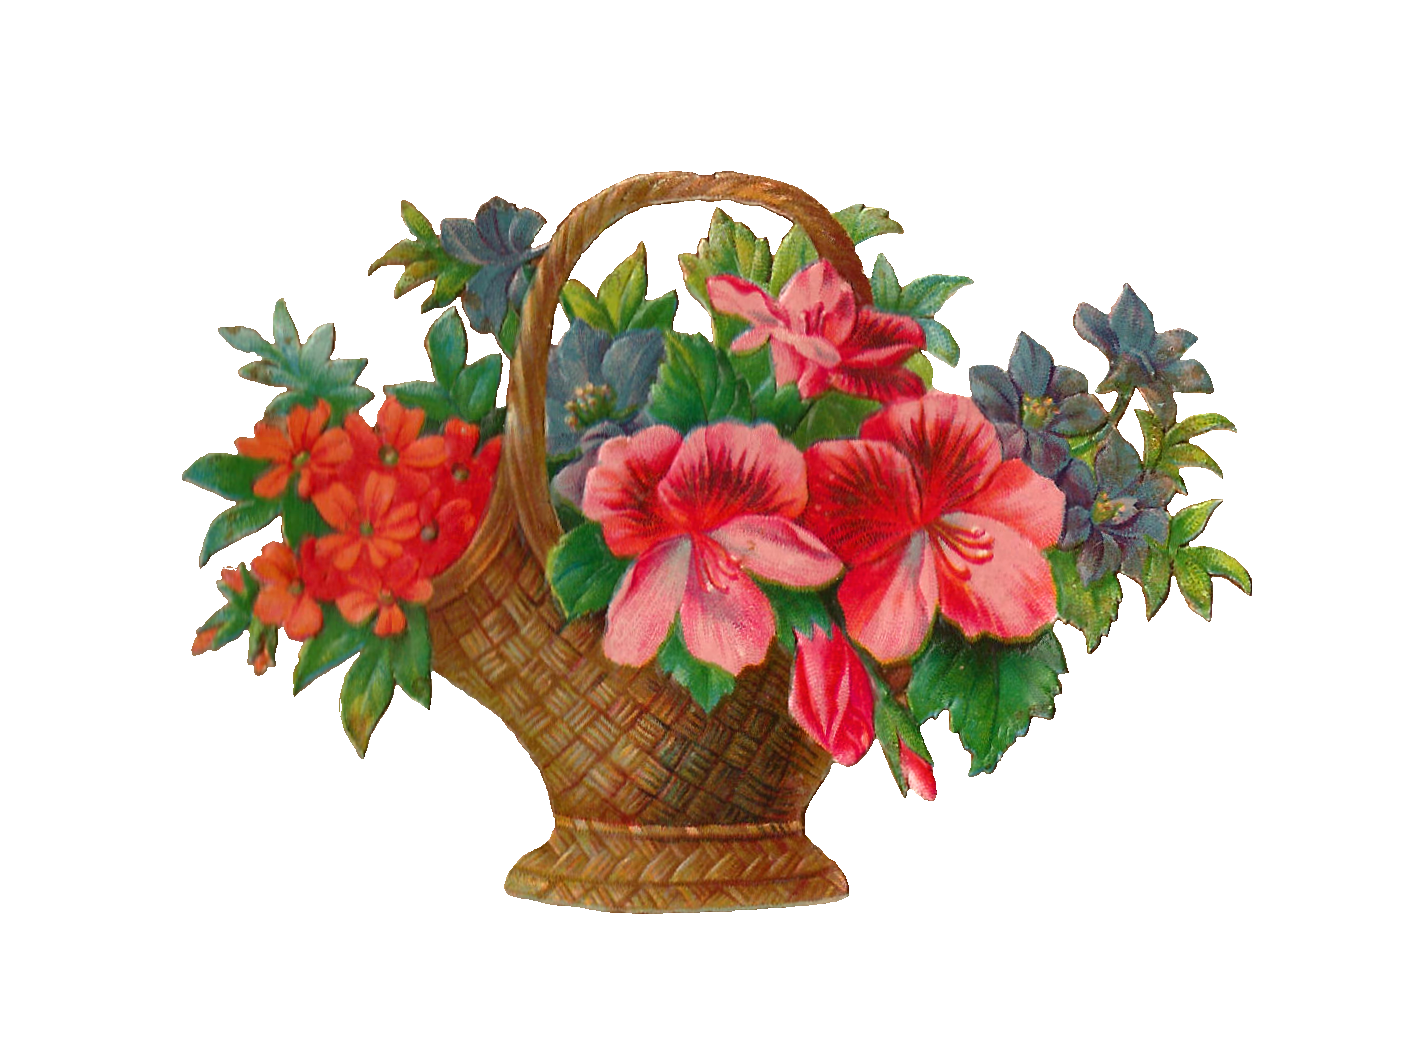 Flower Baskets Photos : Antique images free flower stock image